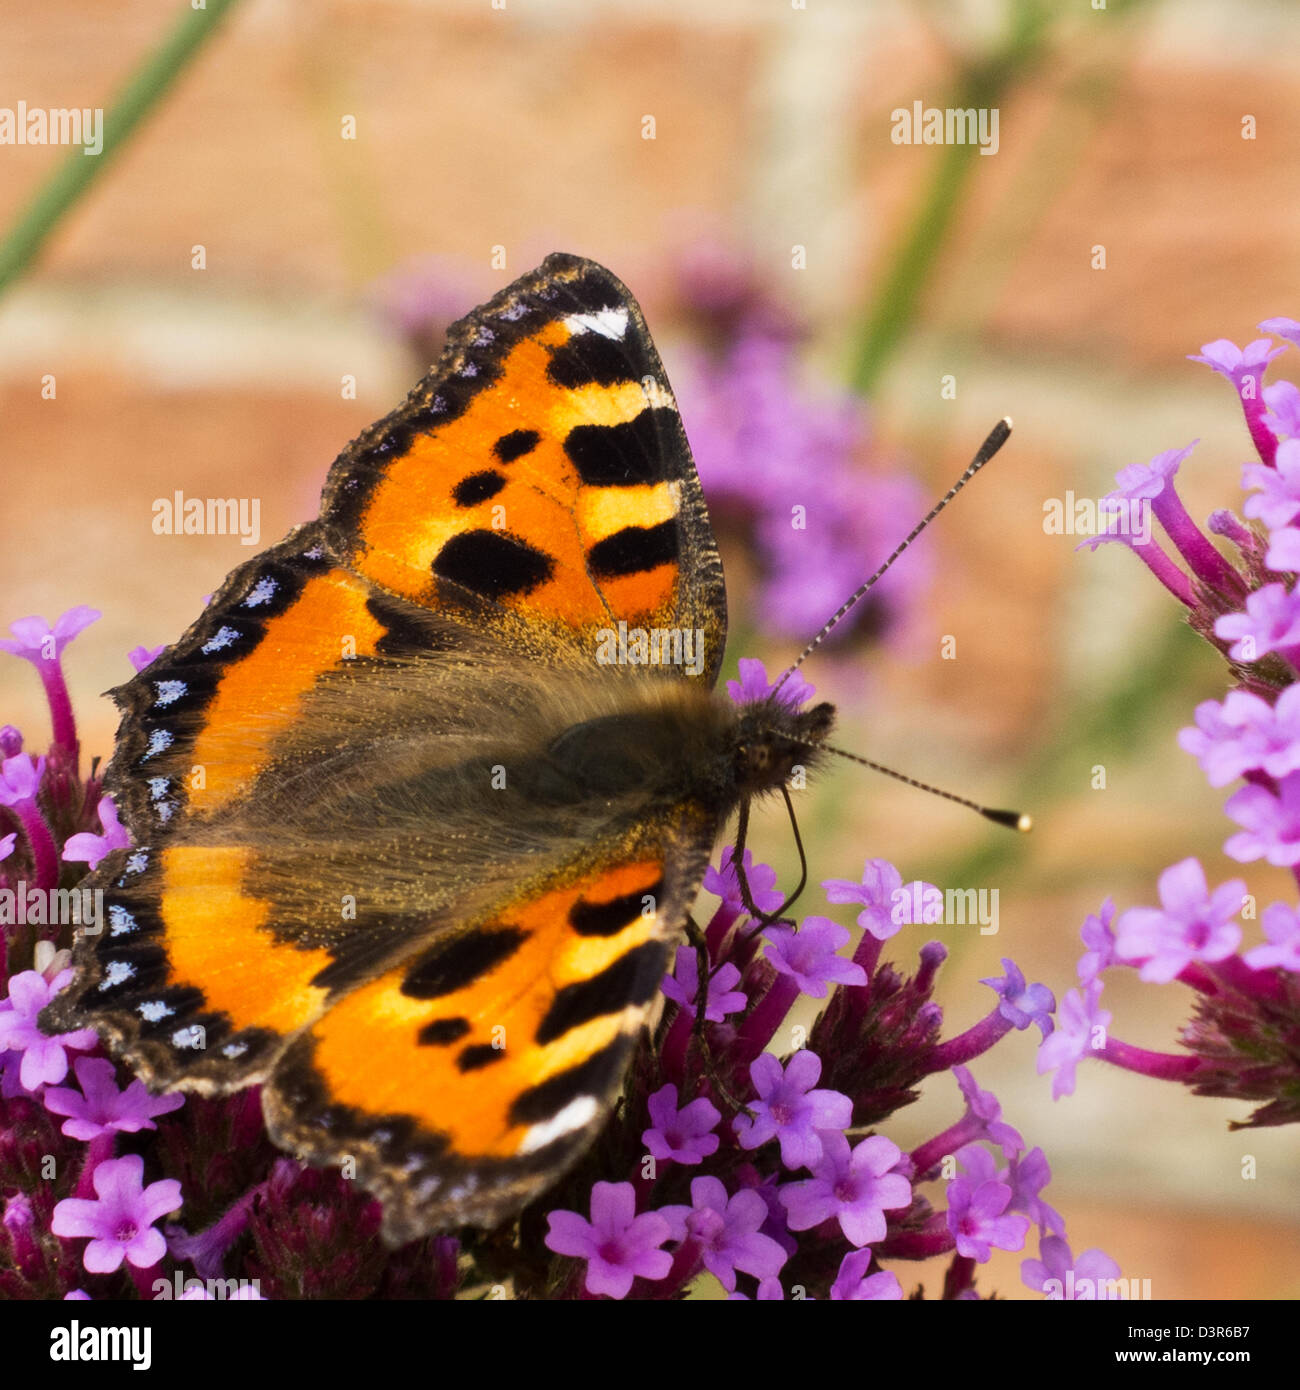 A small tortoiseshell butterfly on pink buddleia in an English garden - Stock Image